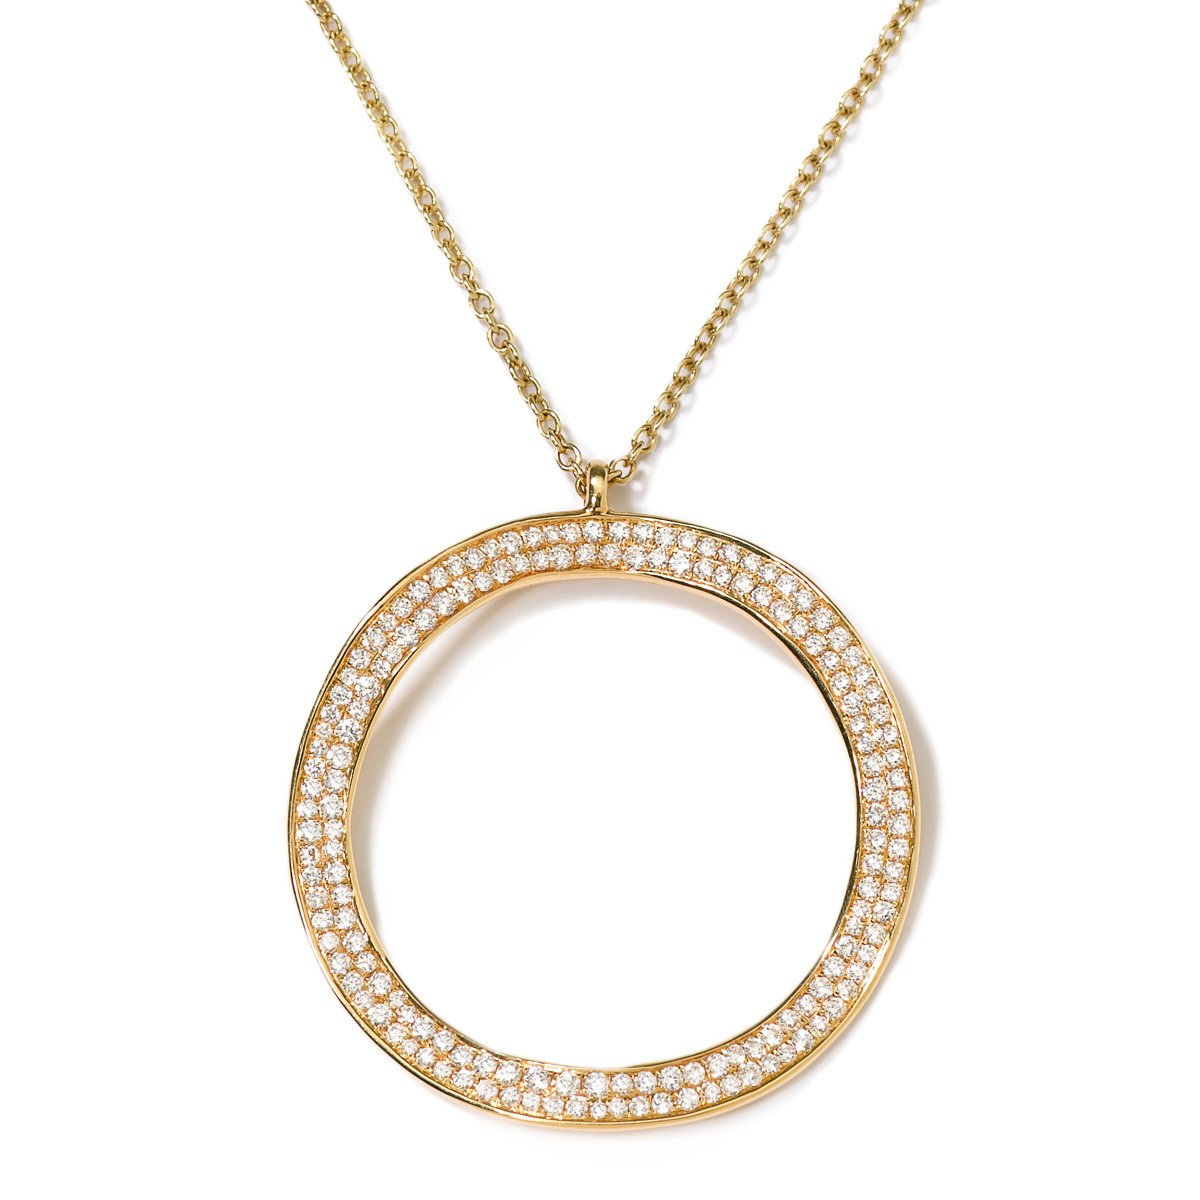 Stylish Minimal Necklace With Hollow disc Pendant